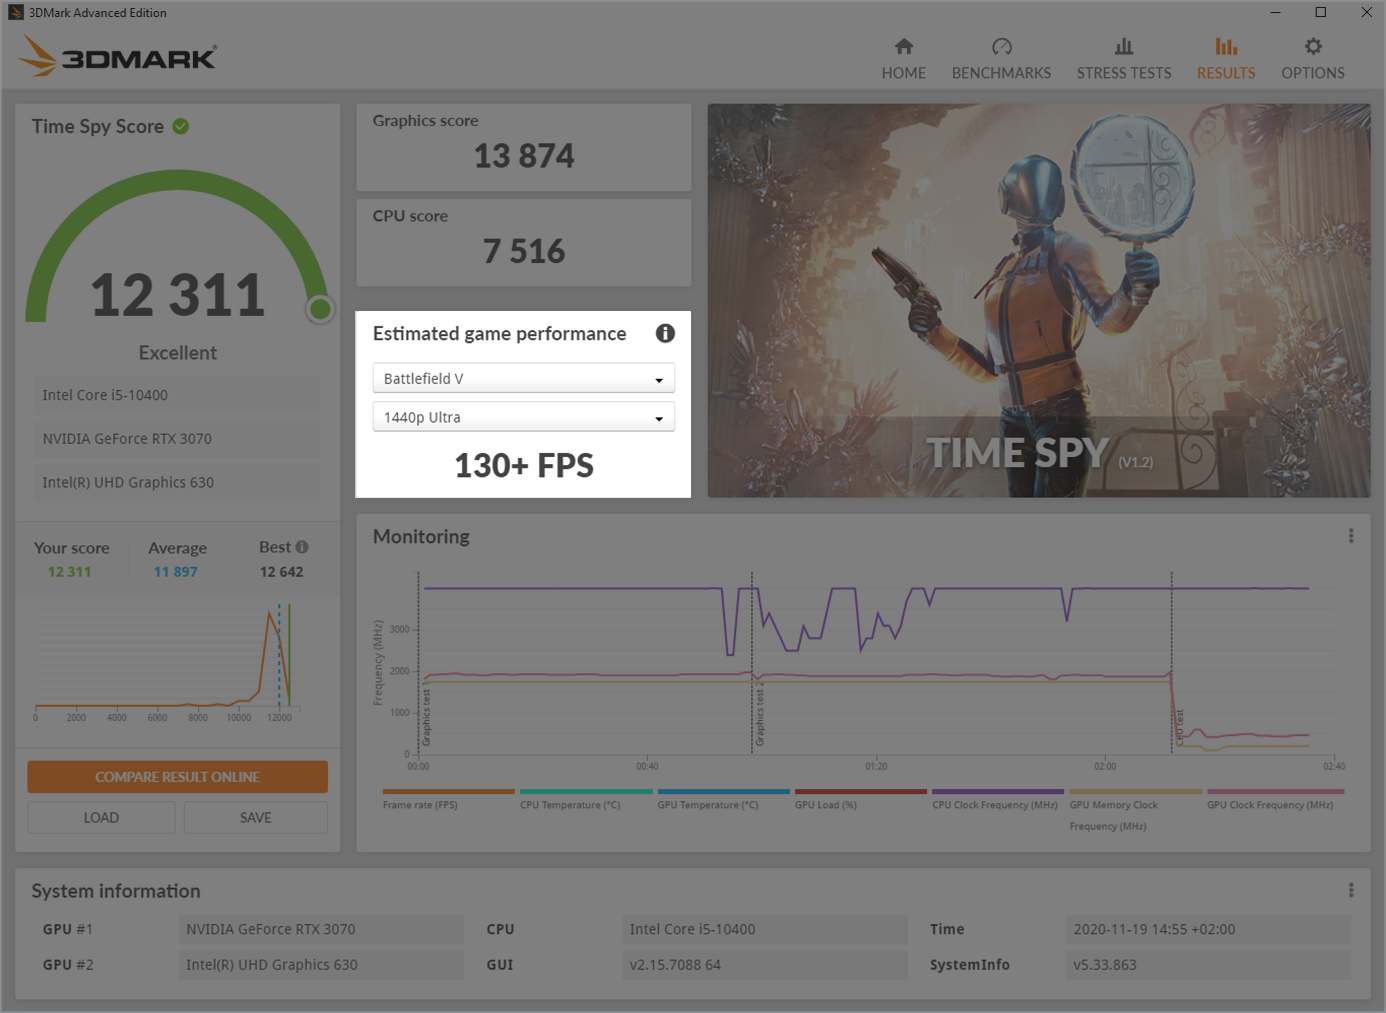 3DMark estimates game performance from your benchmark score